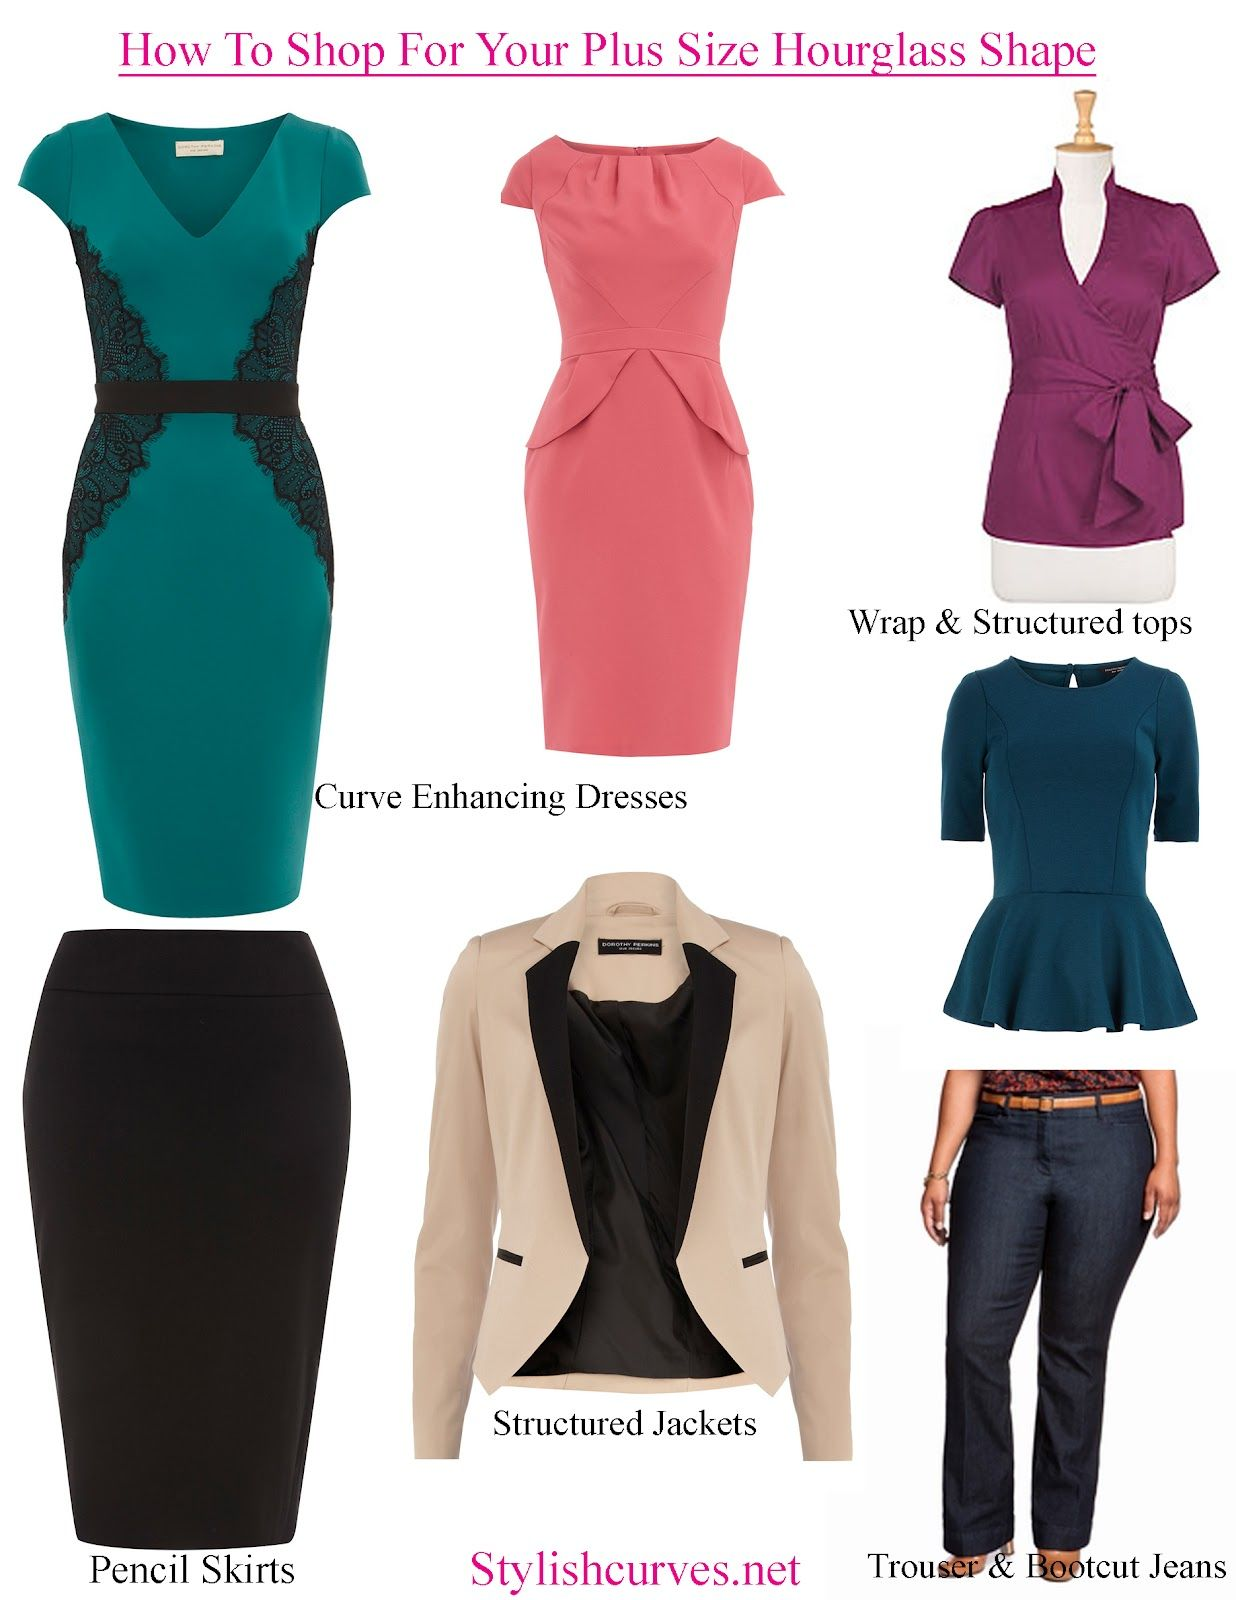 d4bfff69bfd1d SHOPPING  HOW TO DRESS YOUR SHAPE WHEN YOU RE PLUS SIZE (PART I)